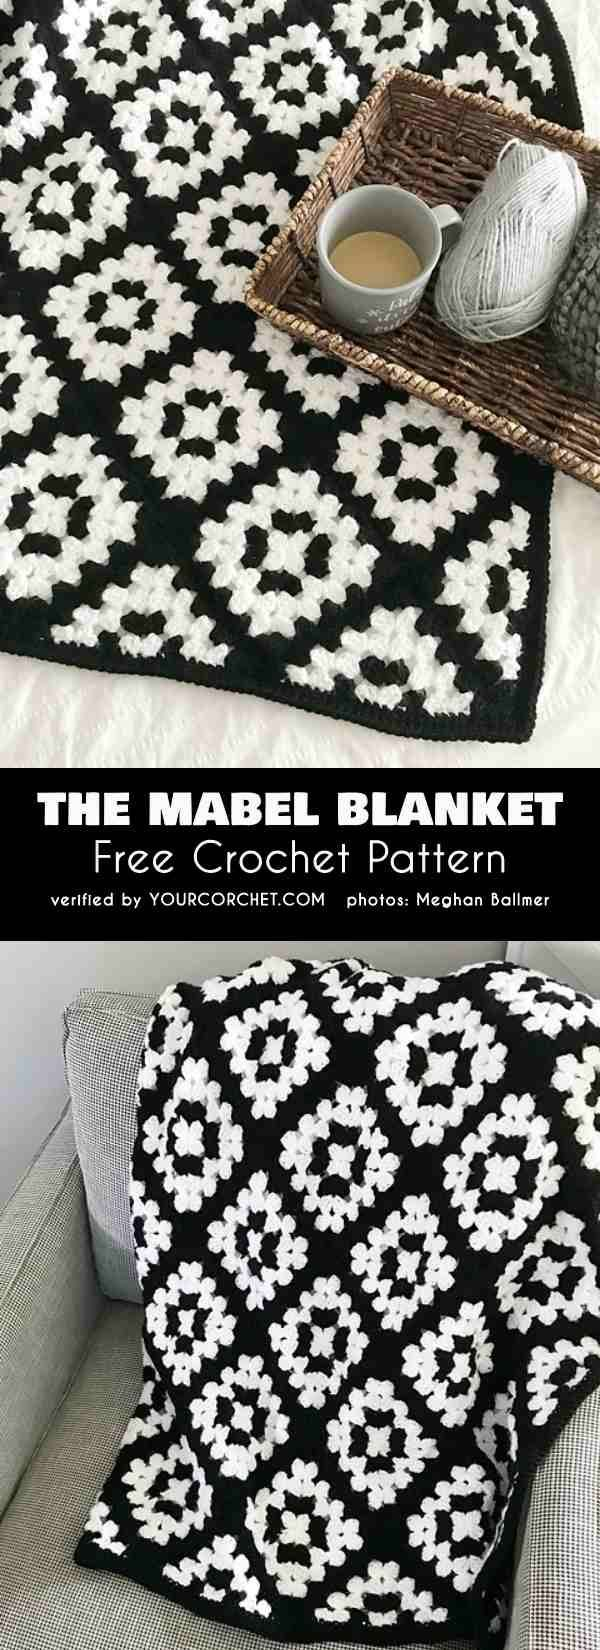 The Mabel Blanket Easy Granny Square Tutorial Free Crochet Pattern Granny Square... - #Blanket #CROCHET #easy #free #granny #Mabel #pattern #Square #tutorial #afghans